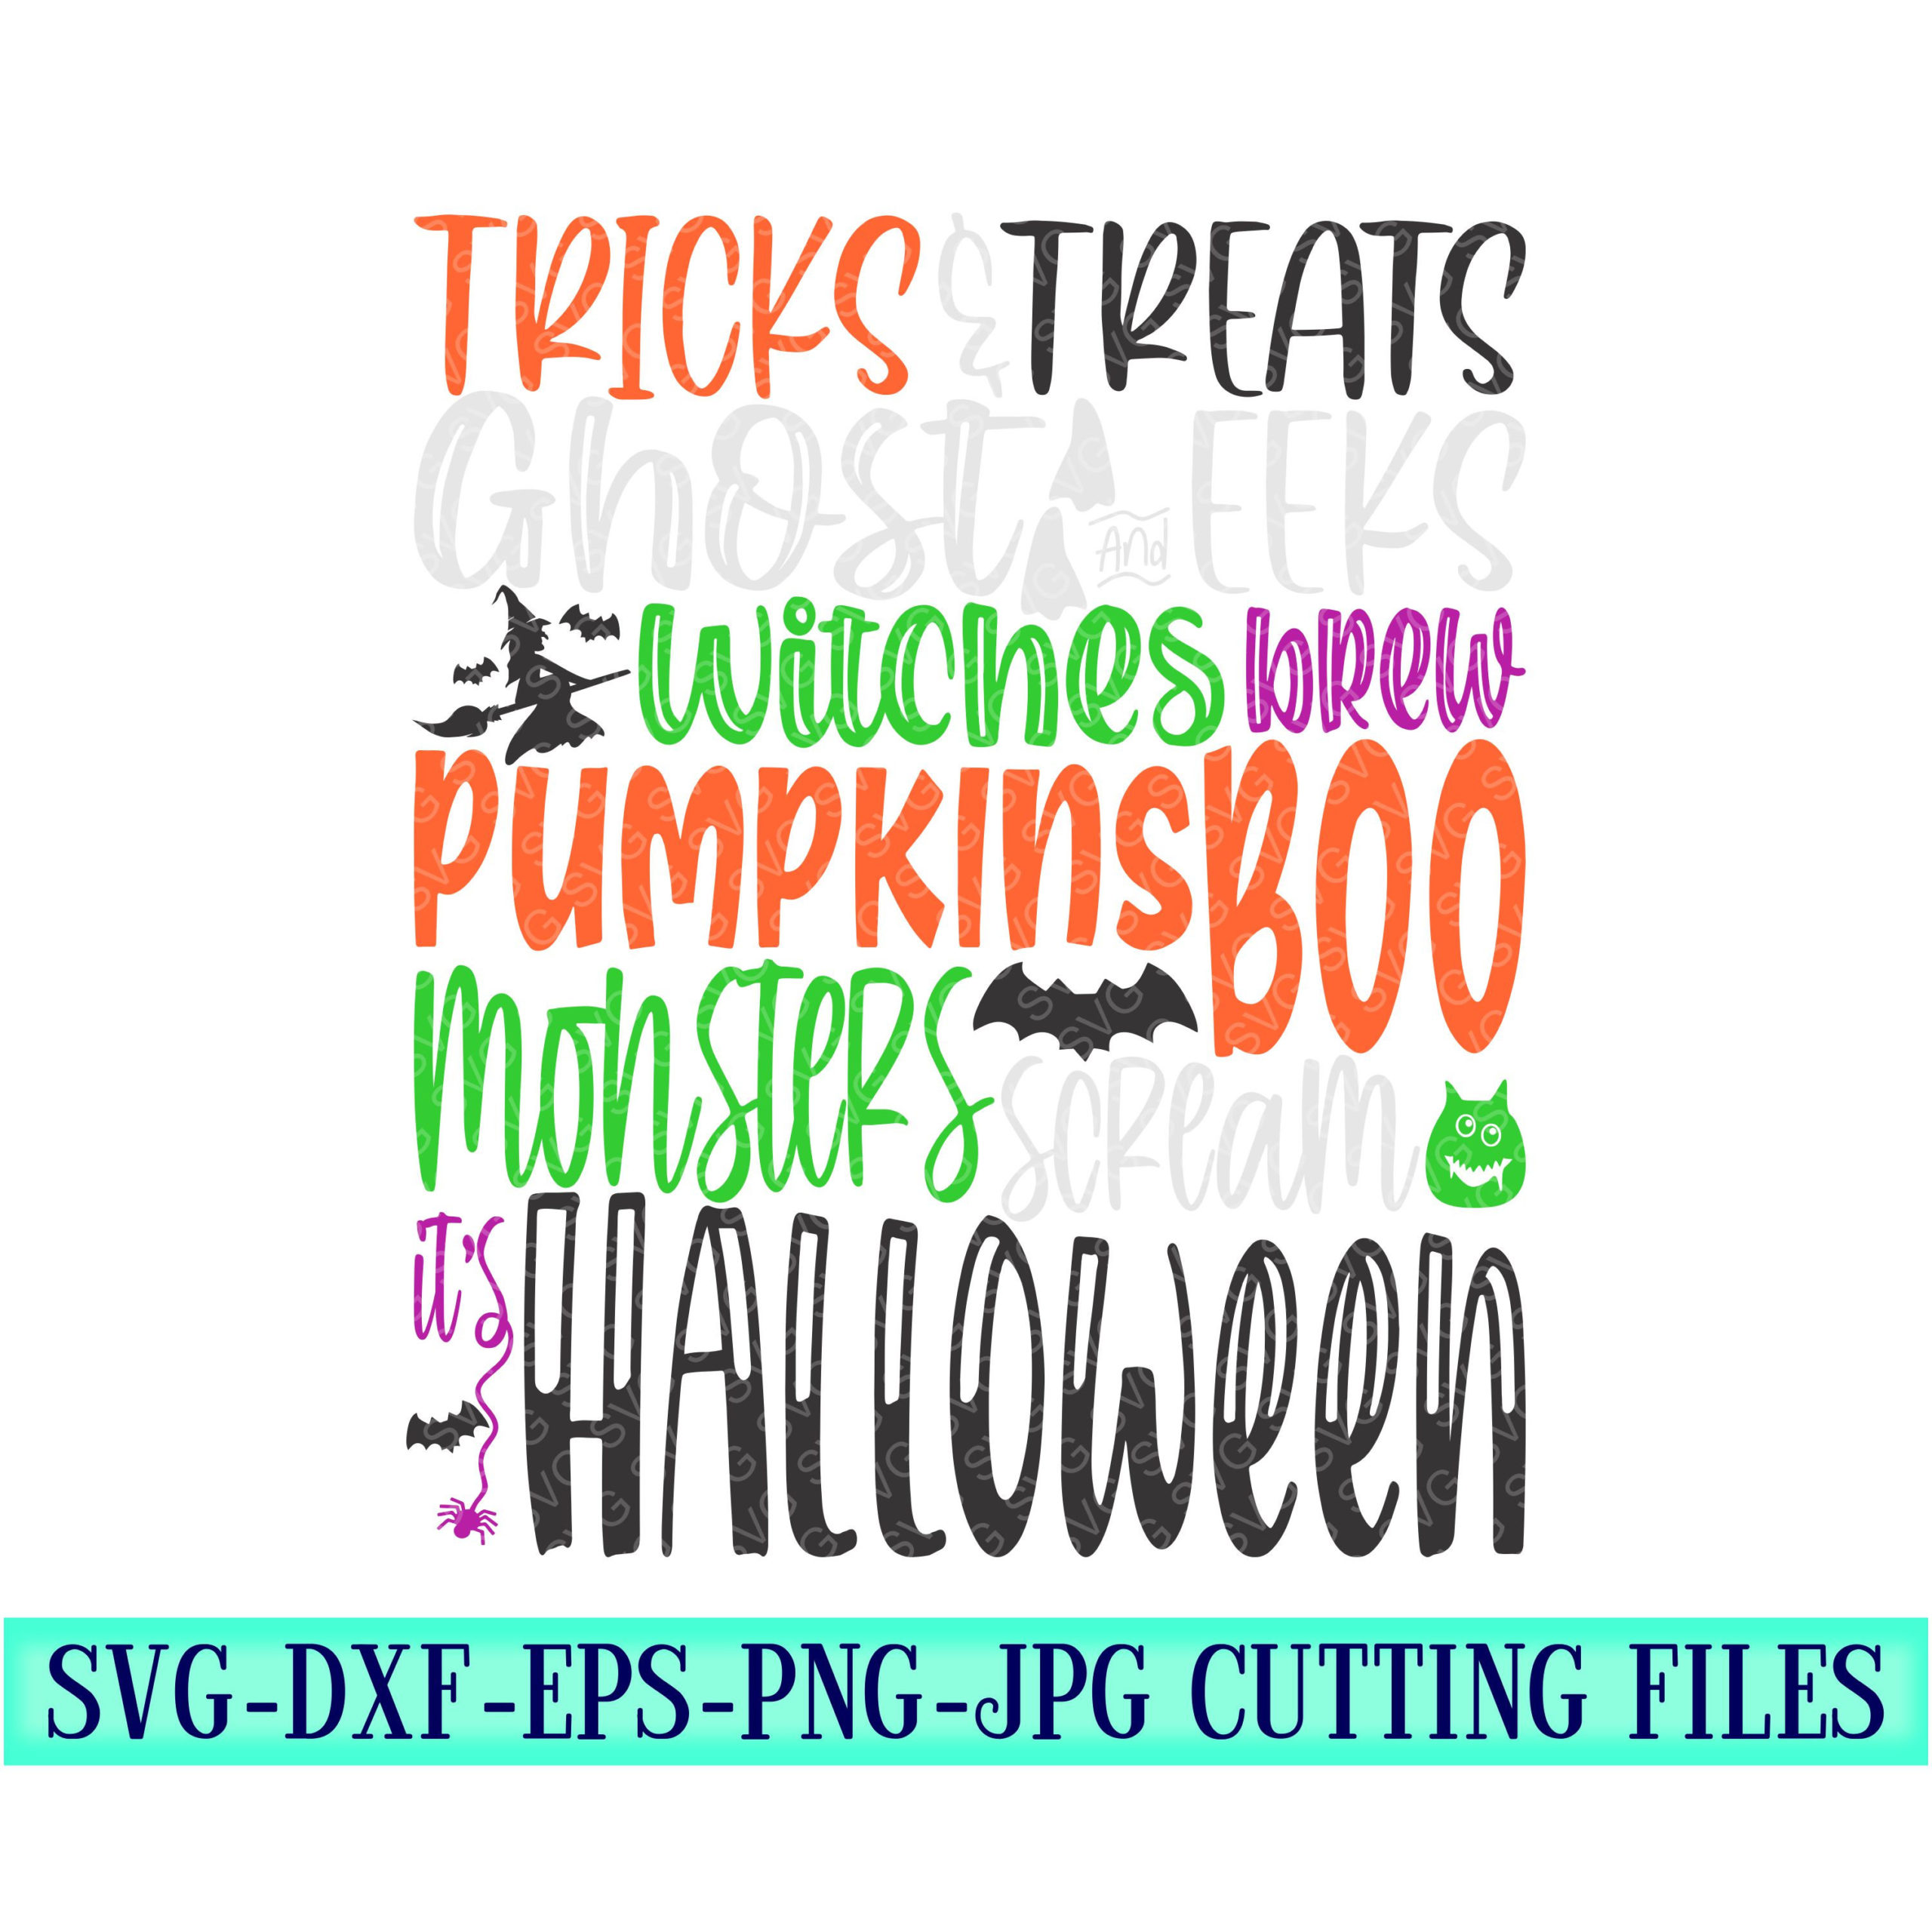 Halloween-typography-svg-halloween-saying-svg-halloween-svg-designs-halloween-cut-files-cricut-cut-files-svg-for-cricut-fall-svg-5f6f7c17